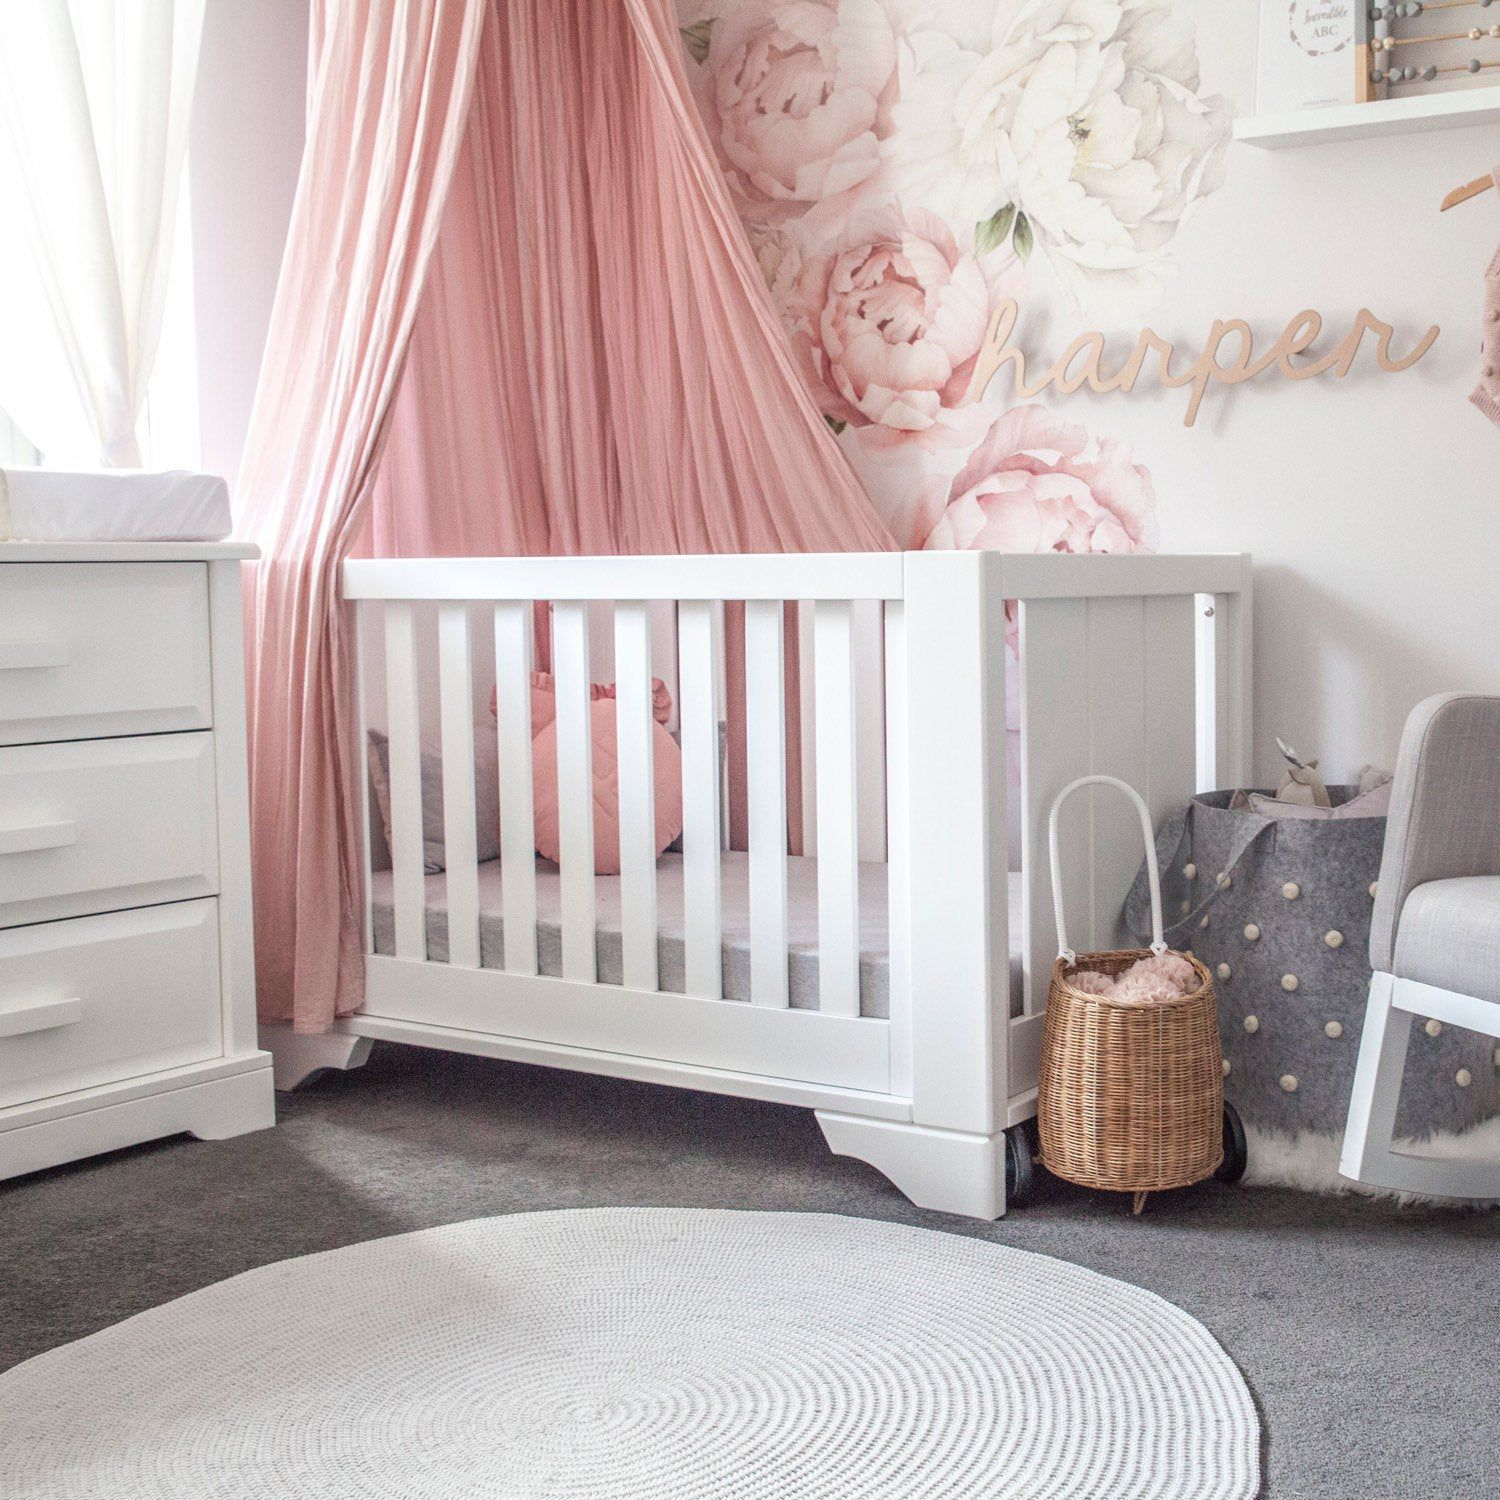 S Round Rugs Perfect For A Baby